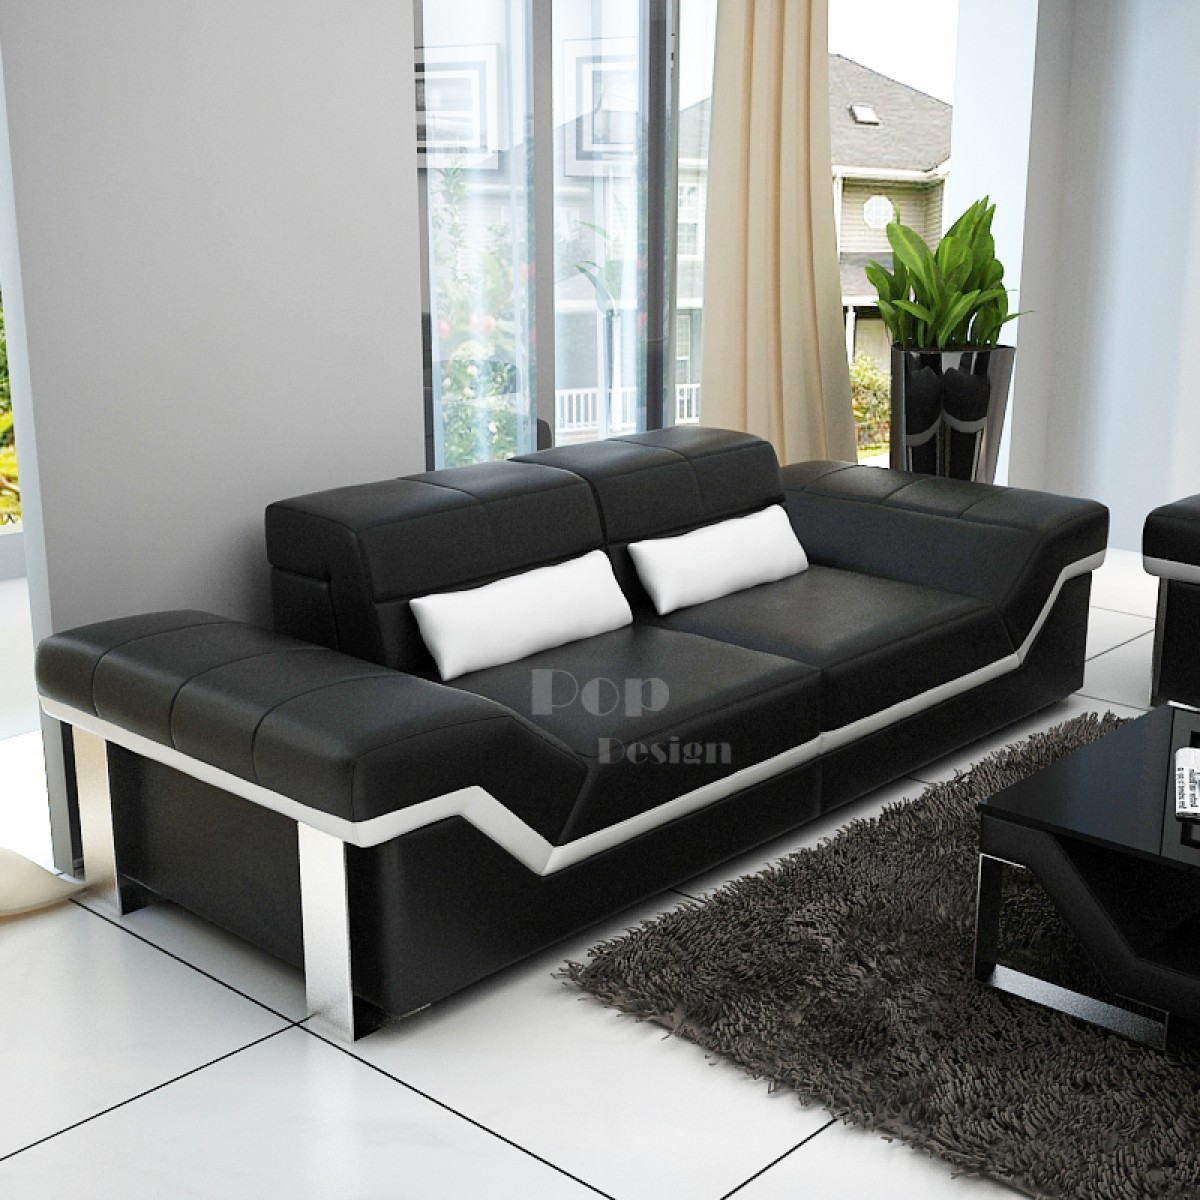 Salon set de canap s design 3 3 torino en cuir pop - Canapes ronds design ...